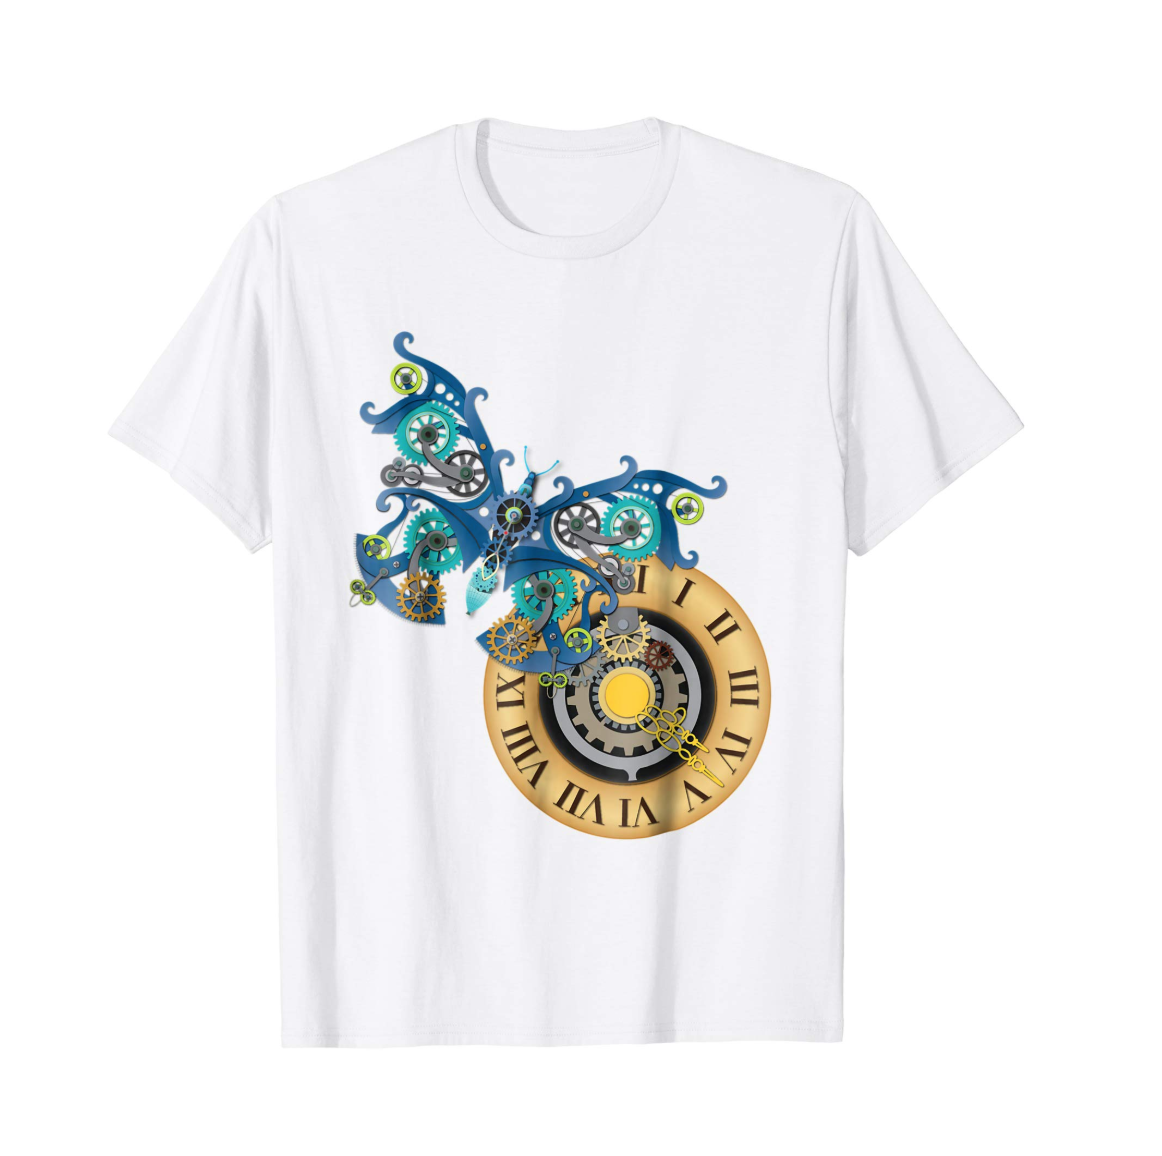 Illustrated Steampunk Butterfly and Clock Graphic T-Shirt, available on Amazon.